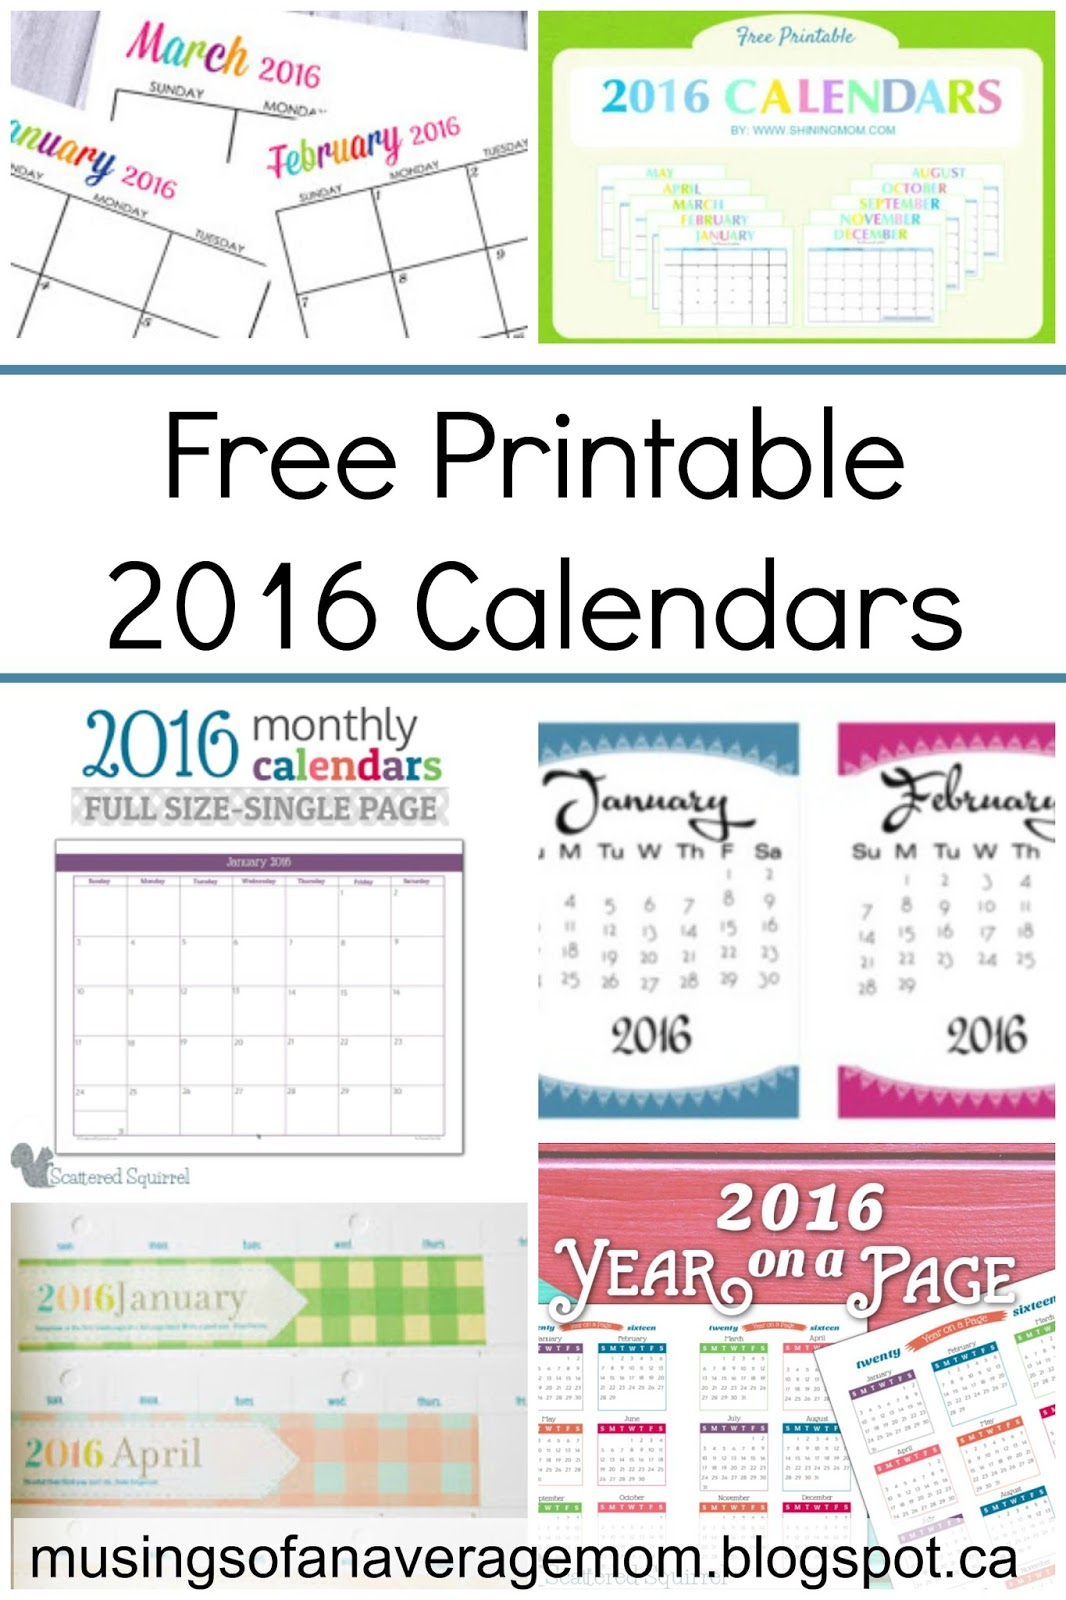 Musings of an Average Mom: Free Printable 2016 Calendar Round-Up